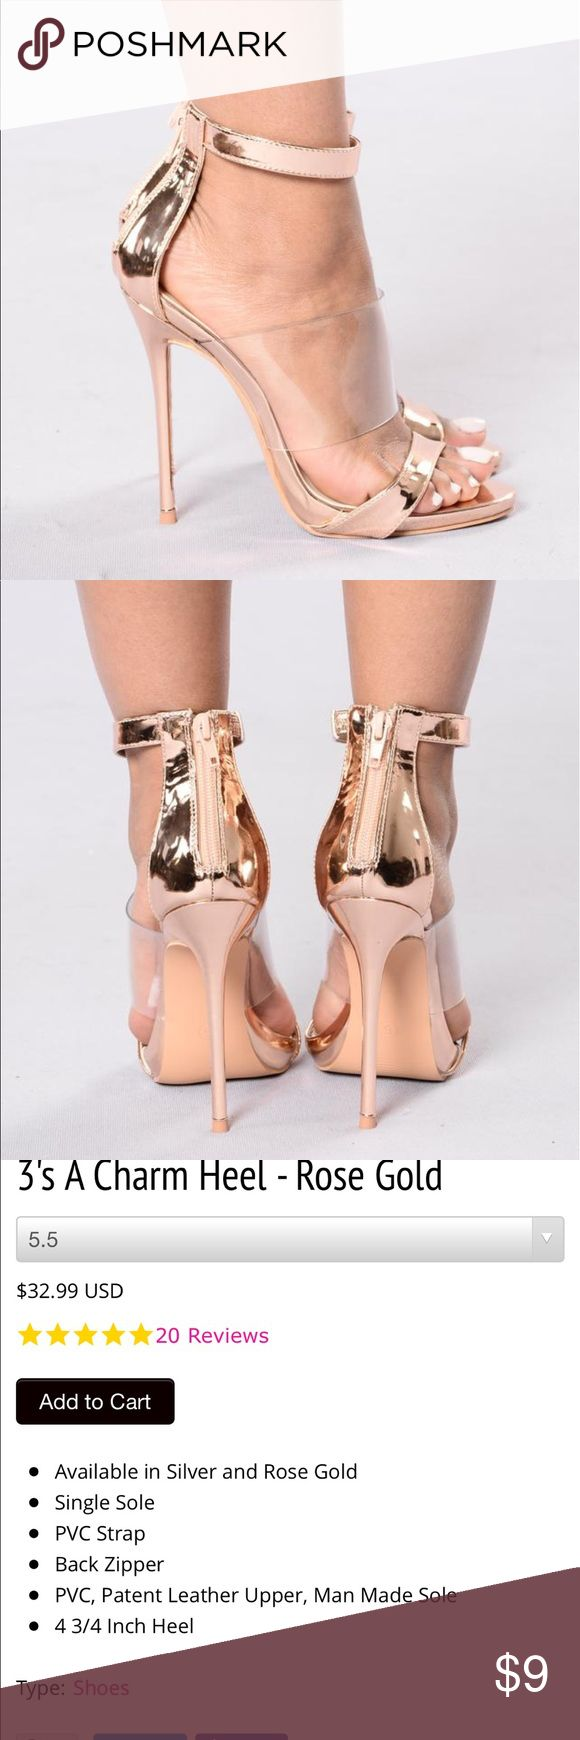 Fashion nova rose gold clear high heels size 8.5 Fashion nova rose gold clear high heels size 8.5 worn once please view all pics for flaws  True to size   Bought from fashion nova brand is so me Fashion Nova Shoes Heels